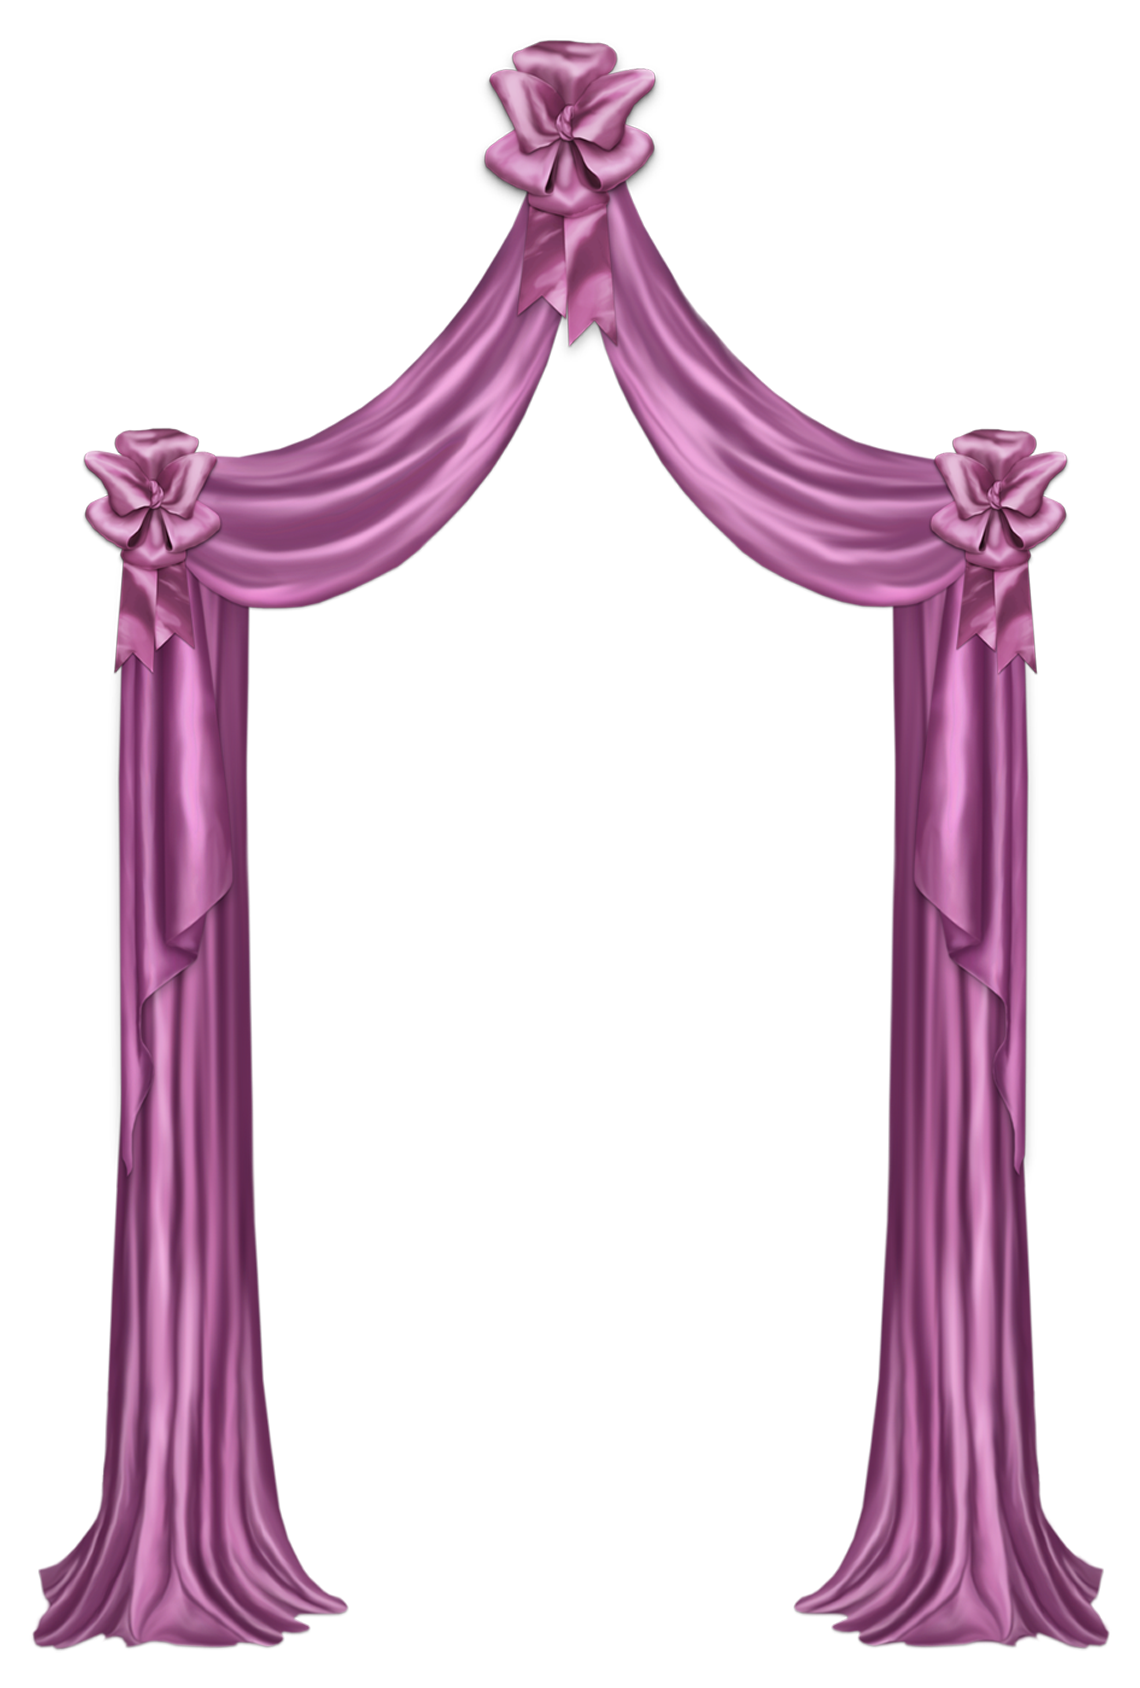 Pink curtain png. Decor clipart picture gallery